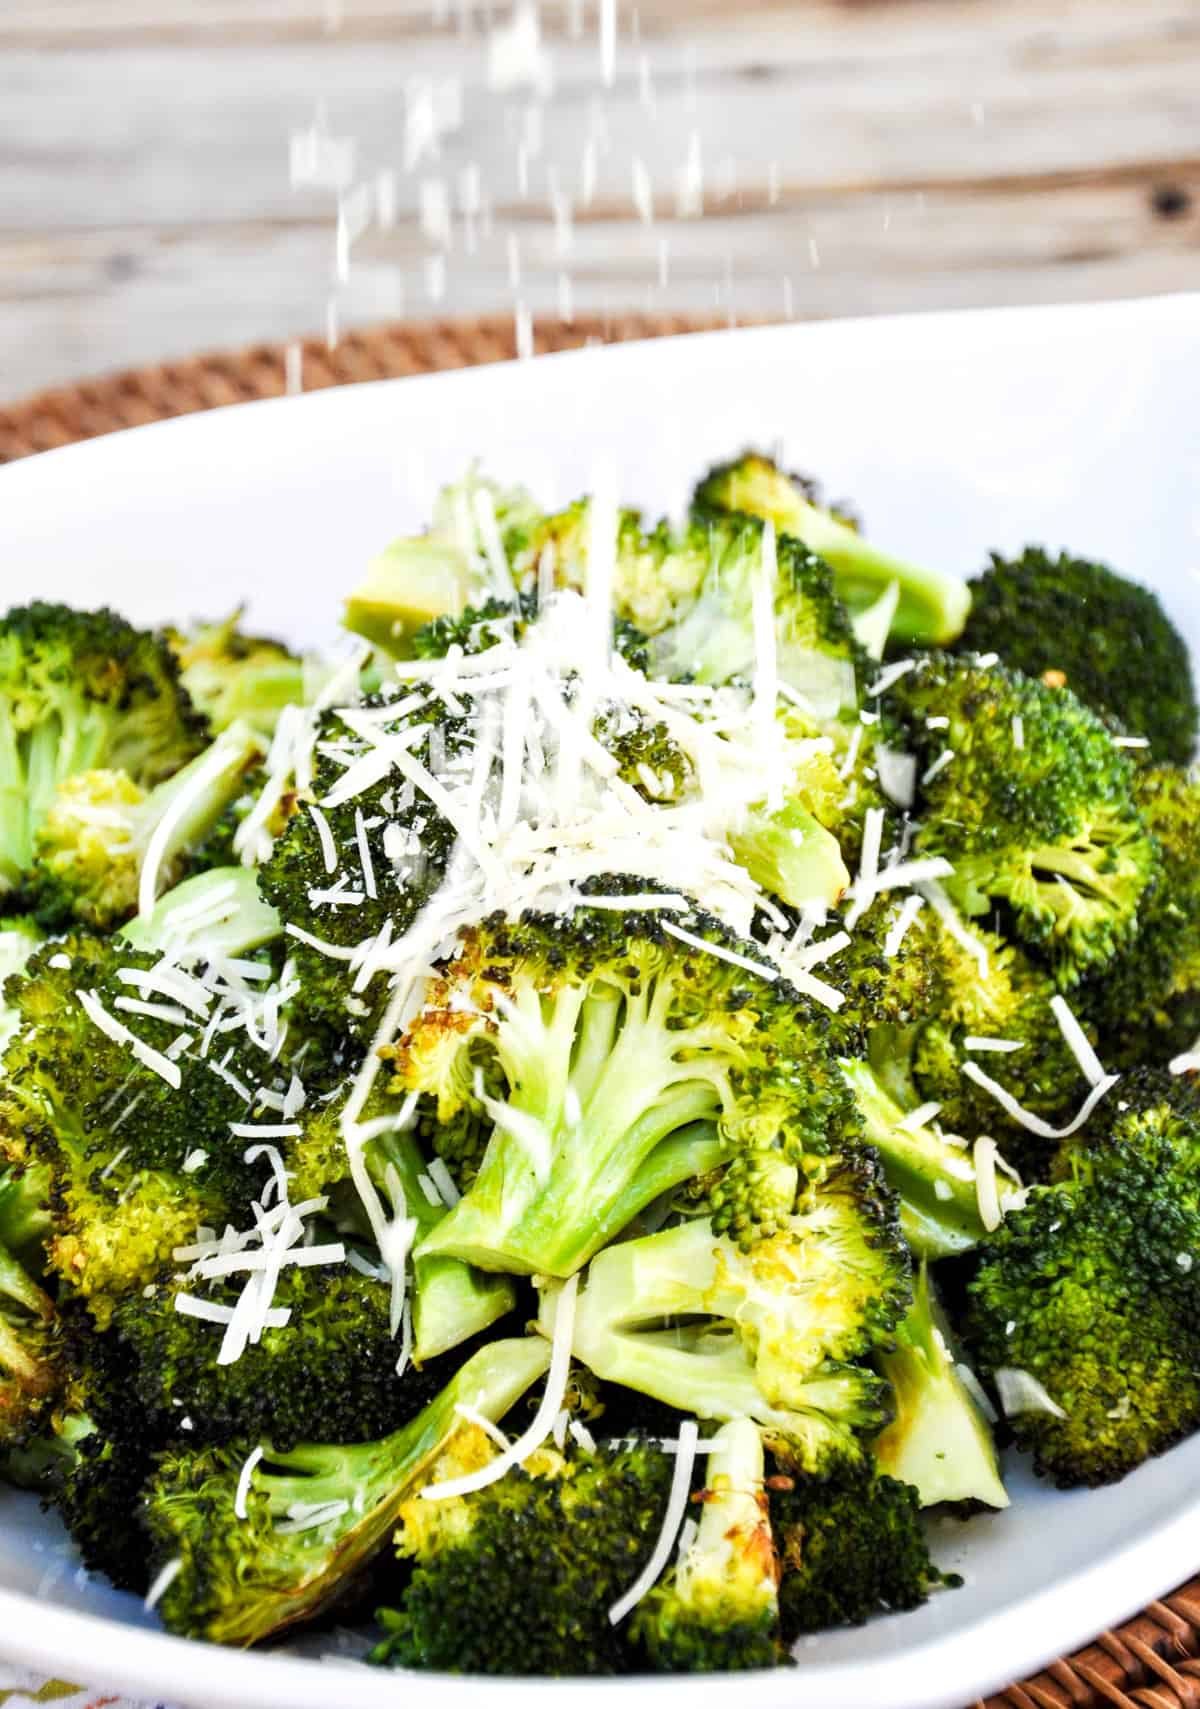 Roasted Garlic Broccoli with Parmesan